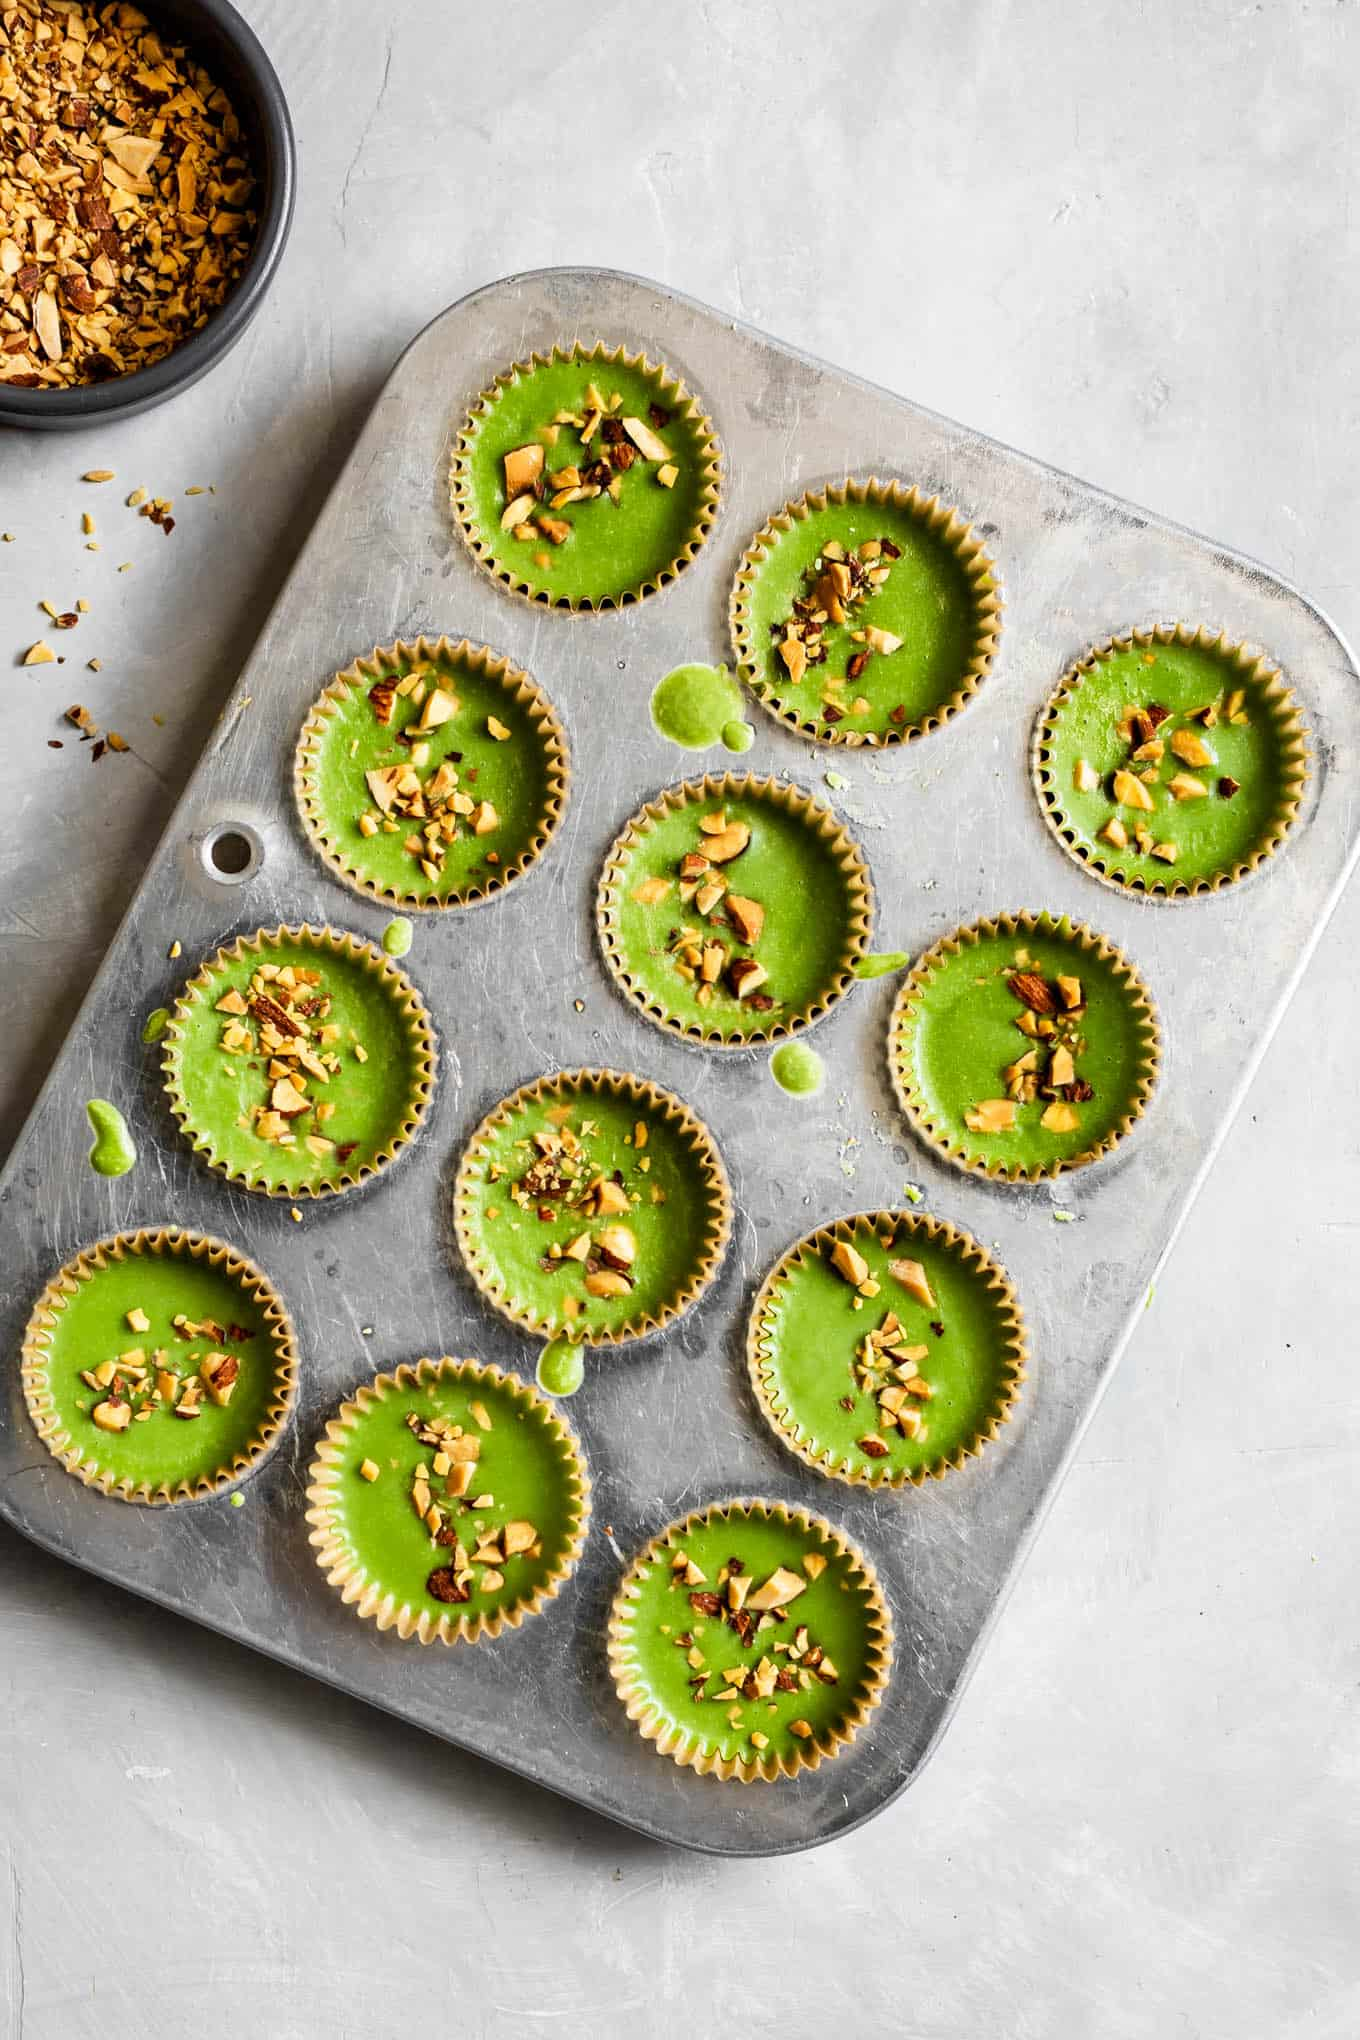 Chilled Coconut Matcha Almond Butter Cups in Mini Muffin Pan